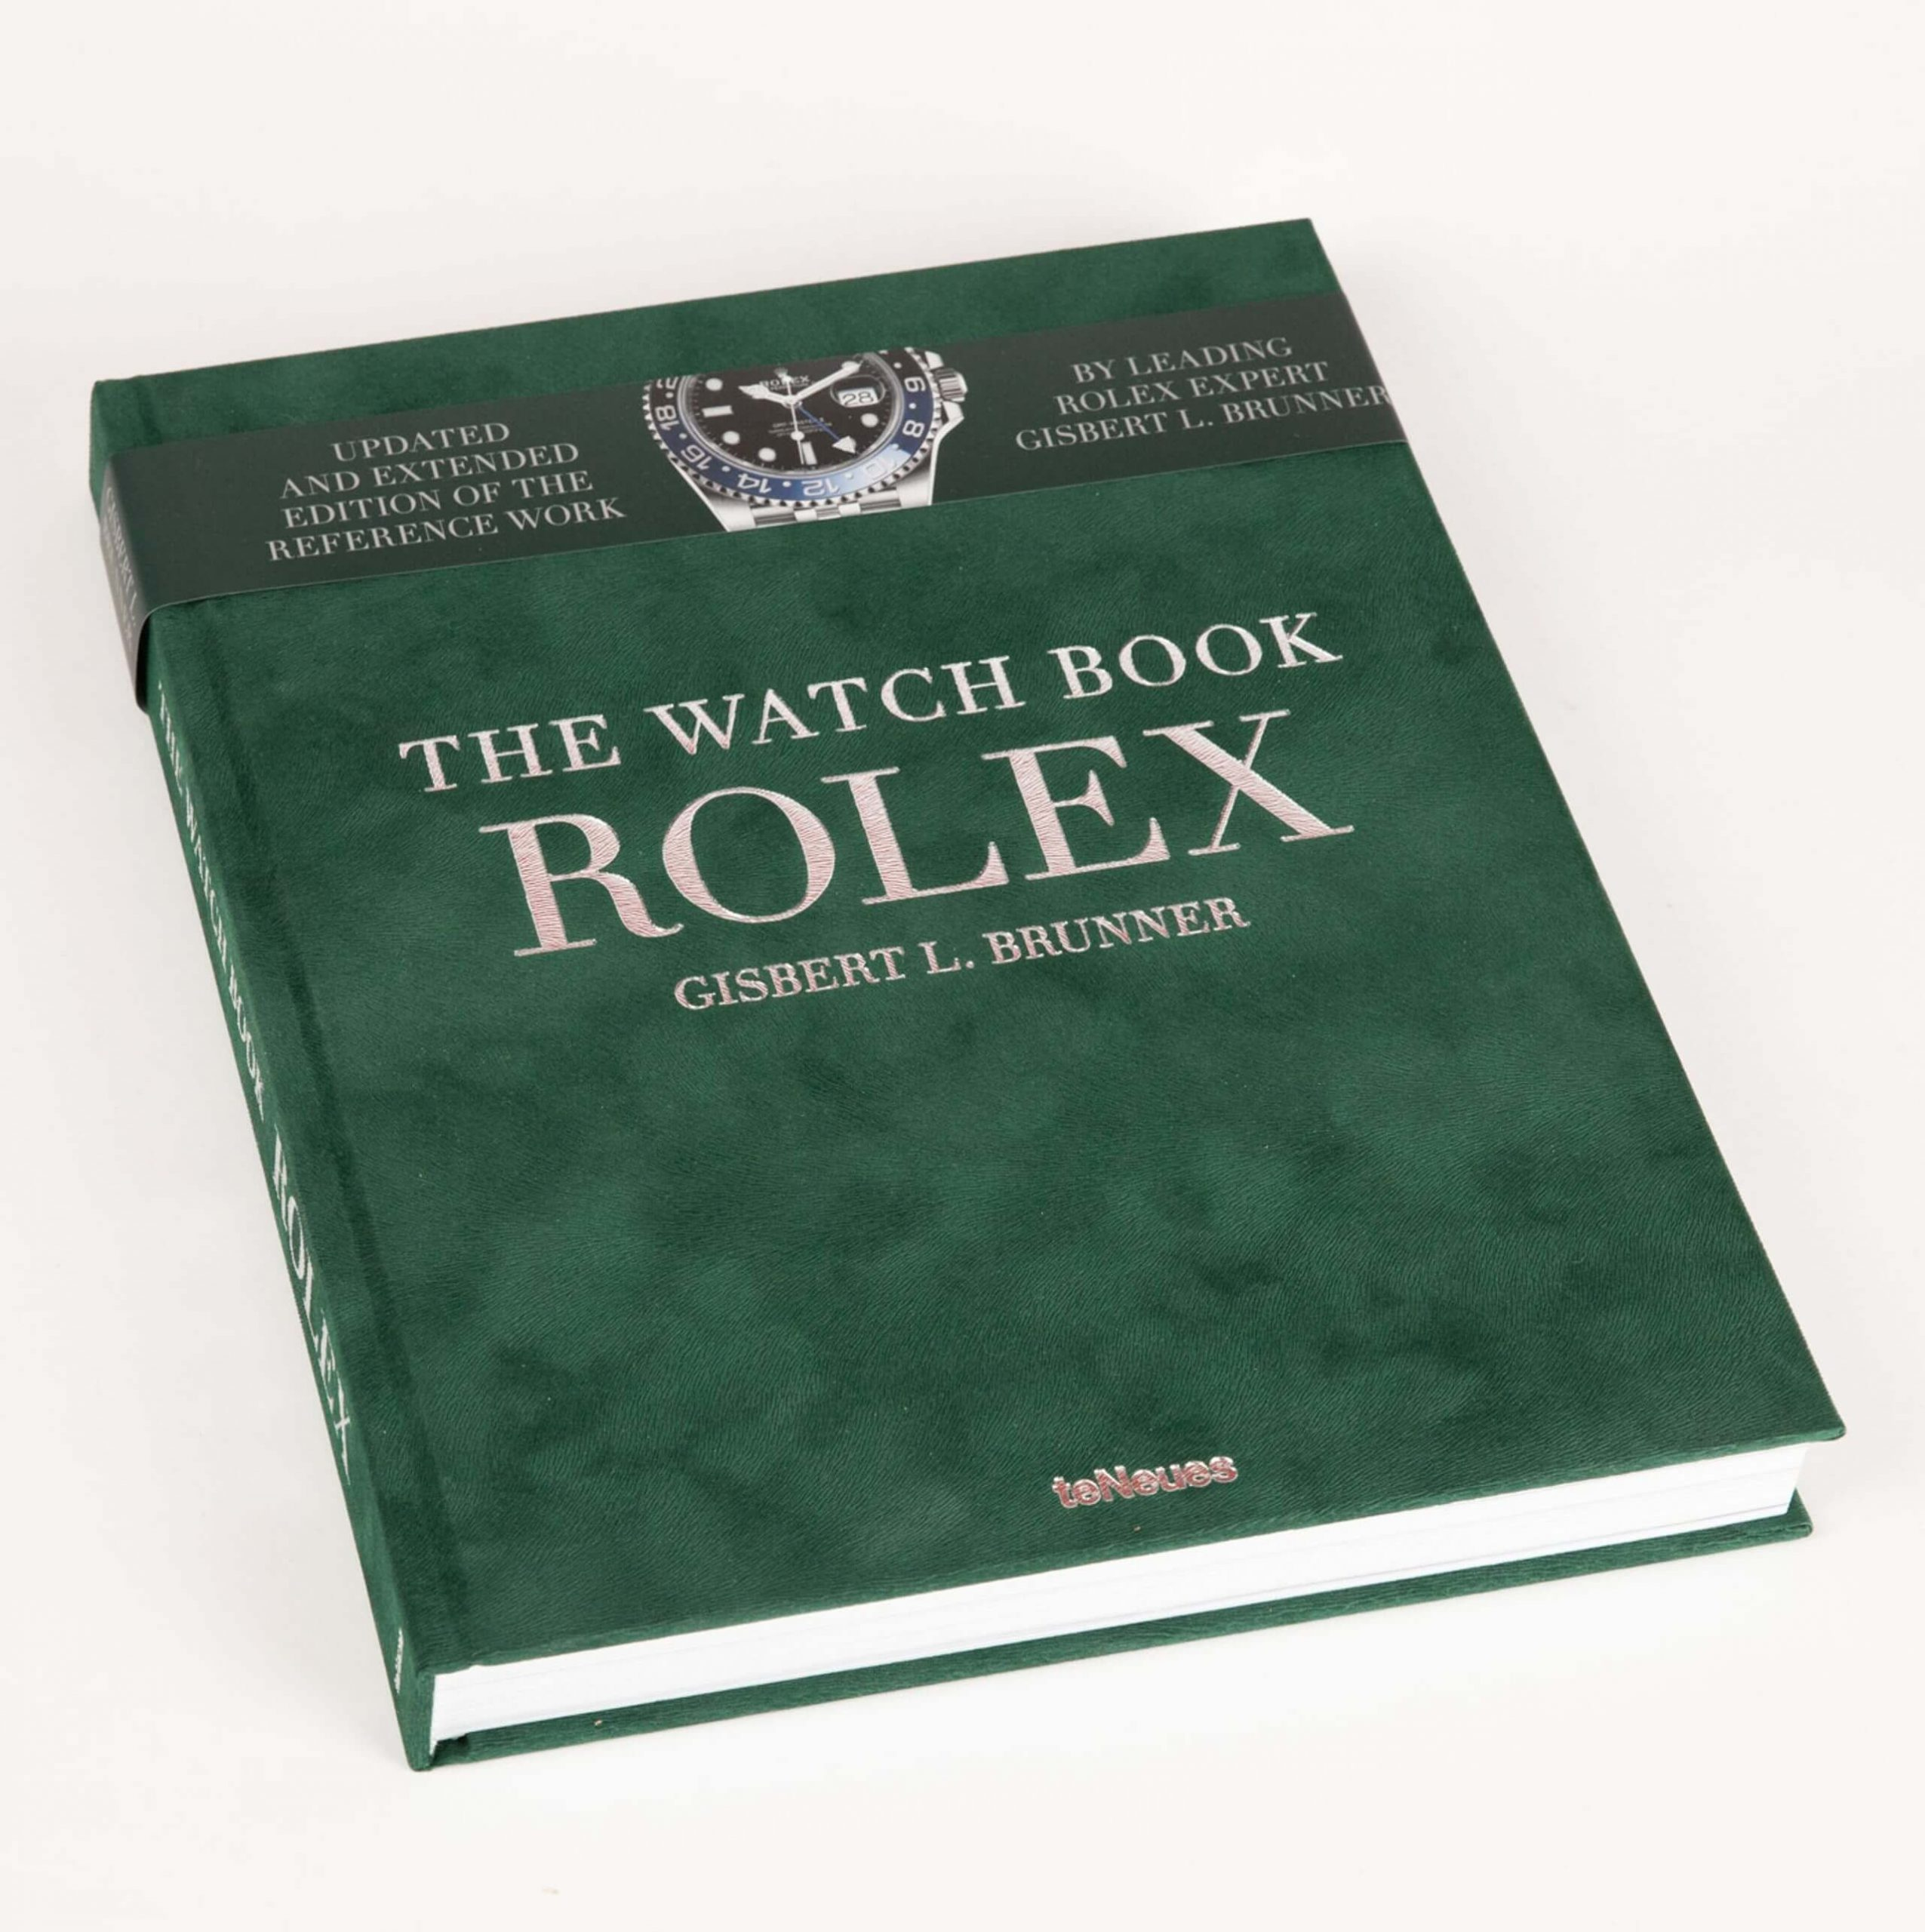 The Watch Book Rolex by Gisbert L. Brunner - Mamic 1970